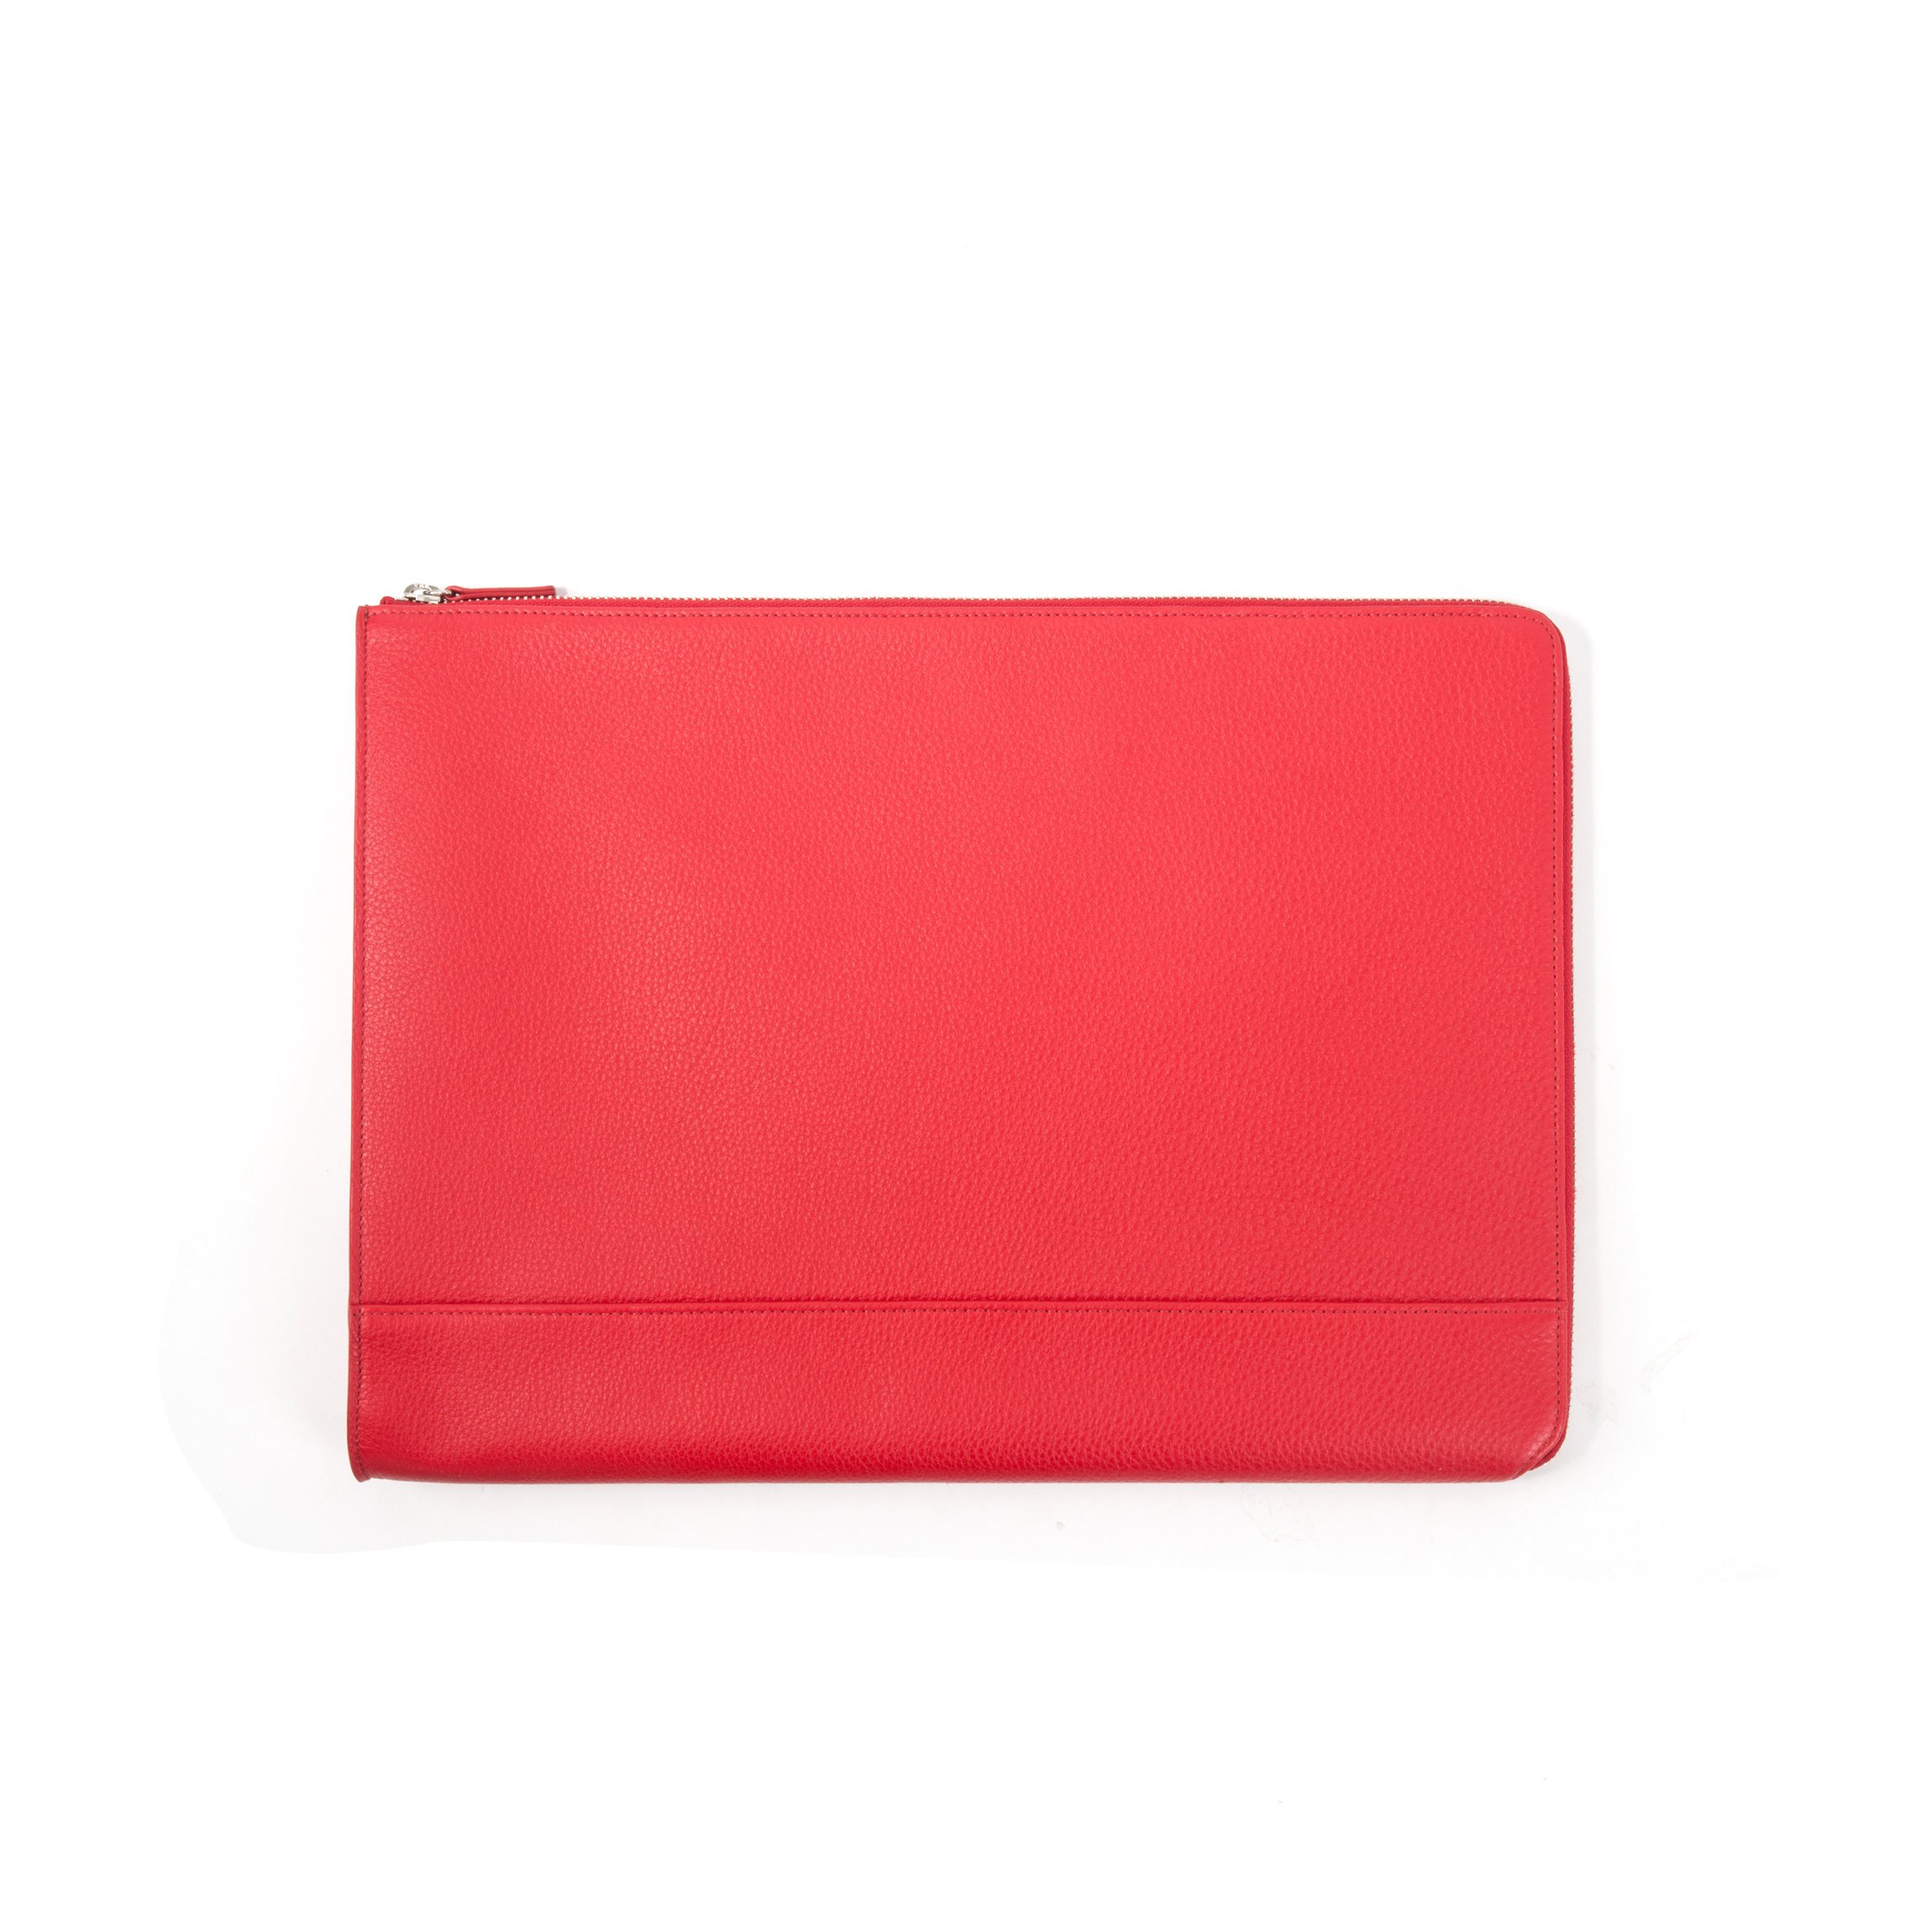 Leatherolgy Zippered Document Holder with Interior Pocket for Tablet - Full Grain Leather Leather - Scarlet (red)